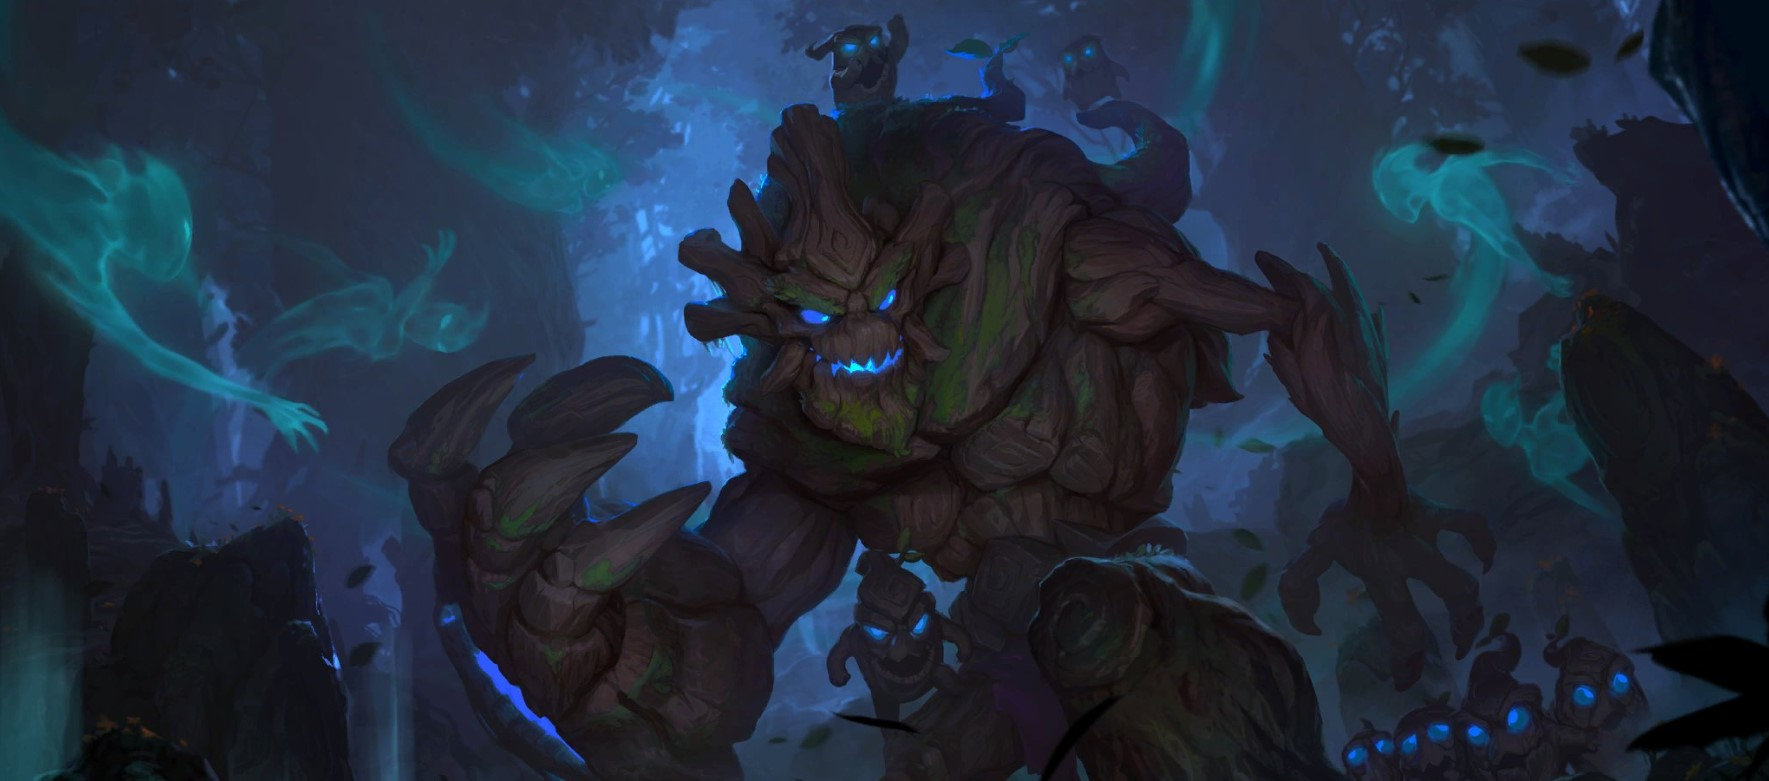 New Legends of Runeterra Card Impressions: Maokai, Toss, and More